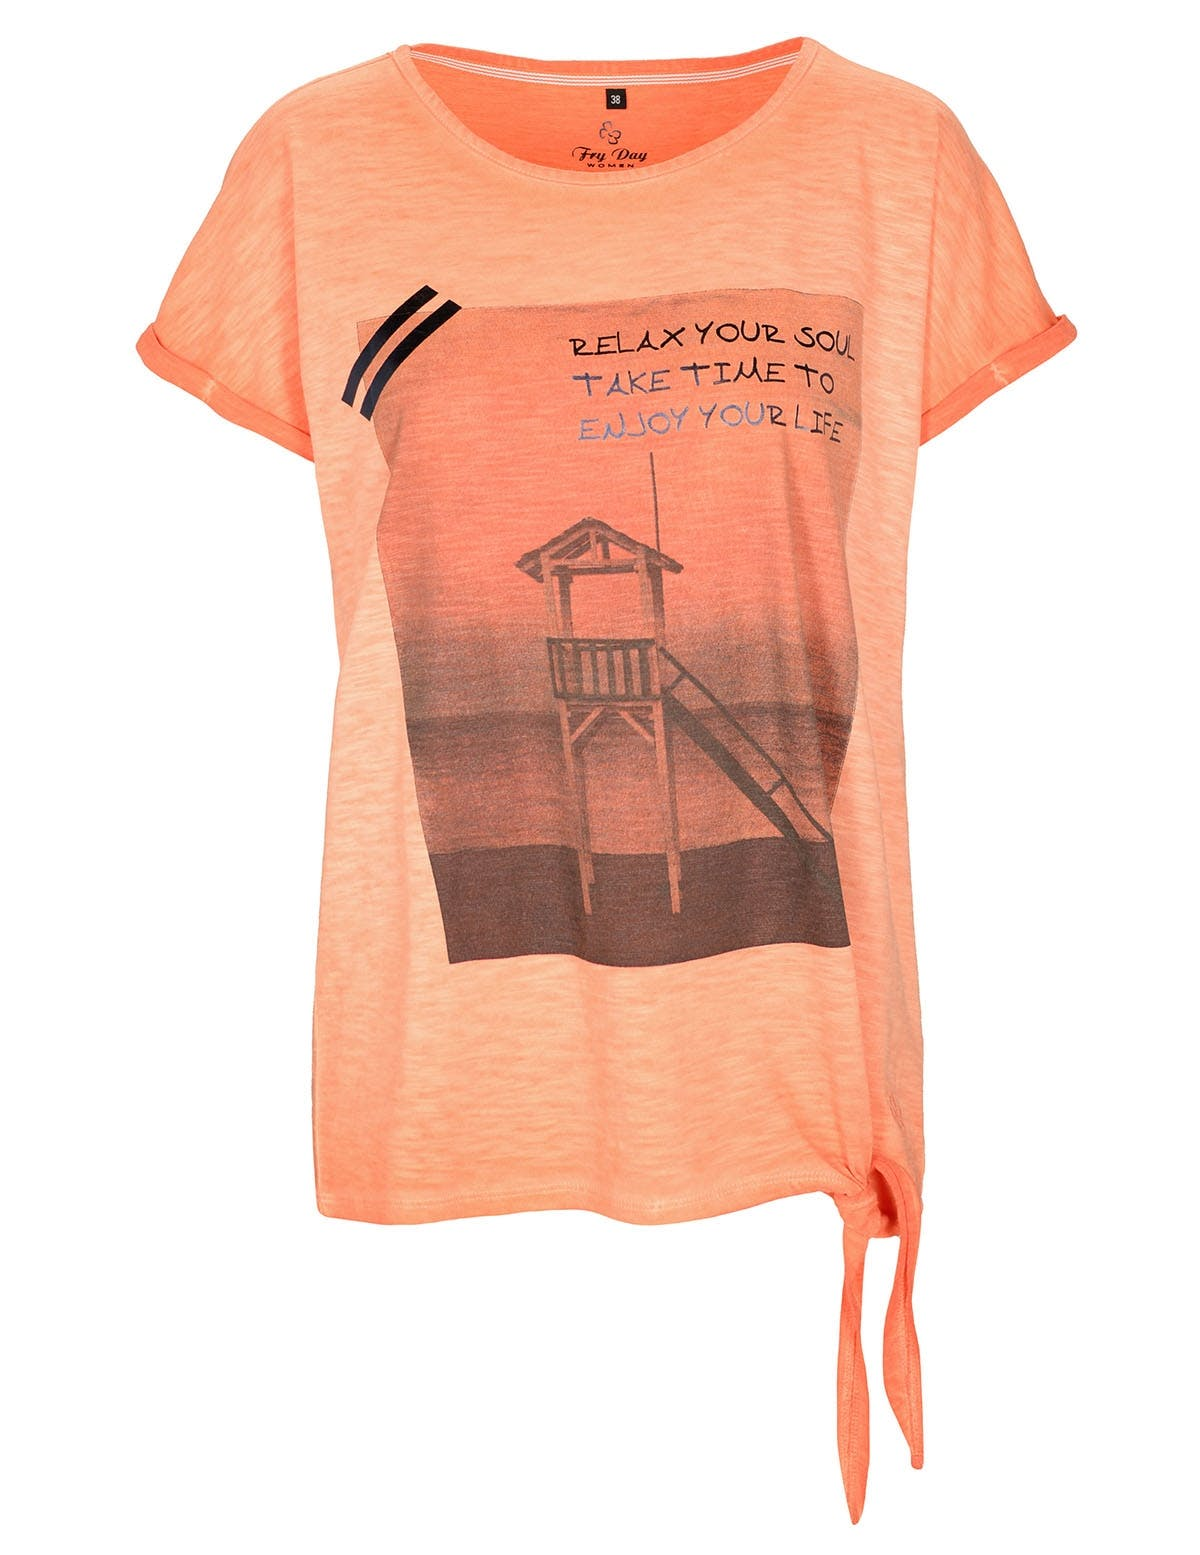 FRY DAY T-Shirt SOUL - Sunset Orange